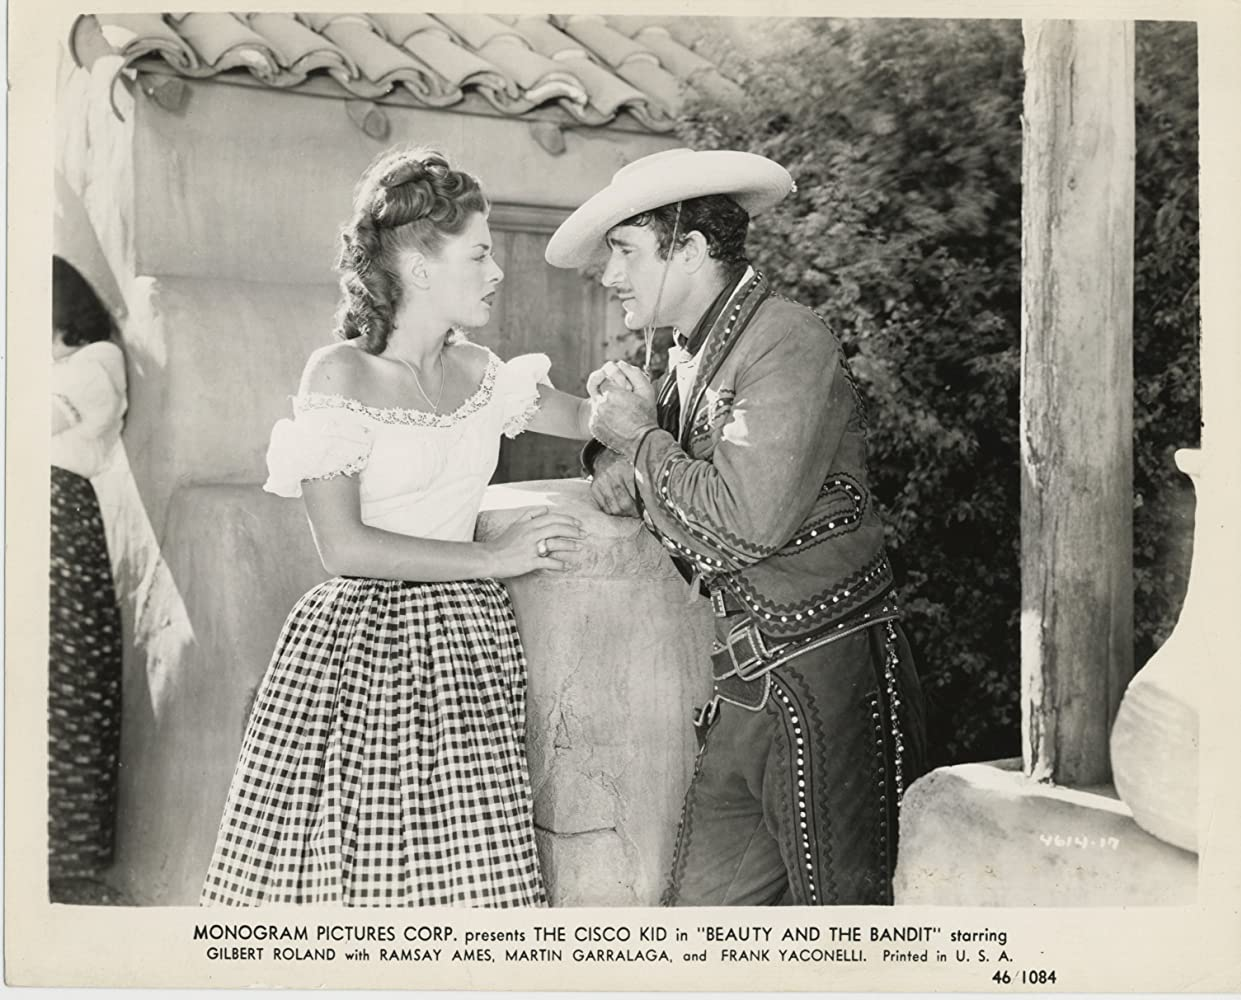 Ramsay Ames and Gilbert Roland in Beauty and the Bandit (1946)